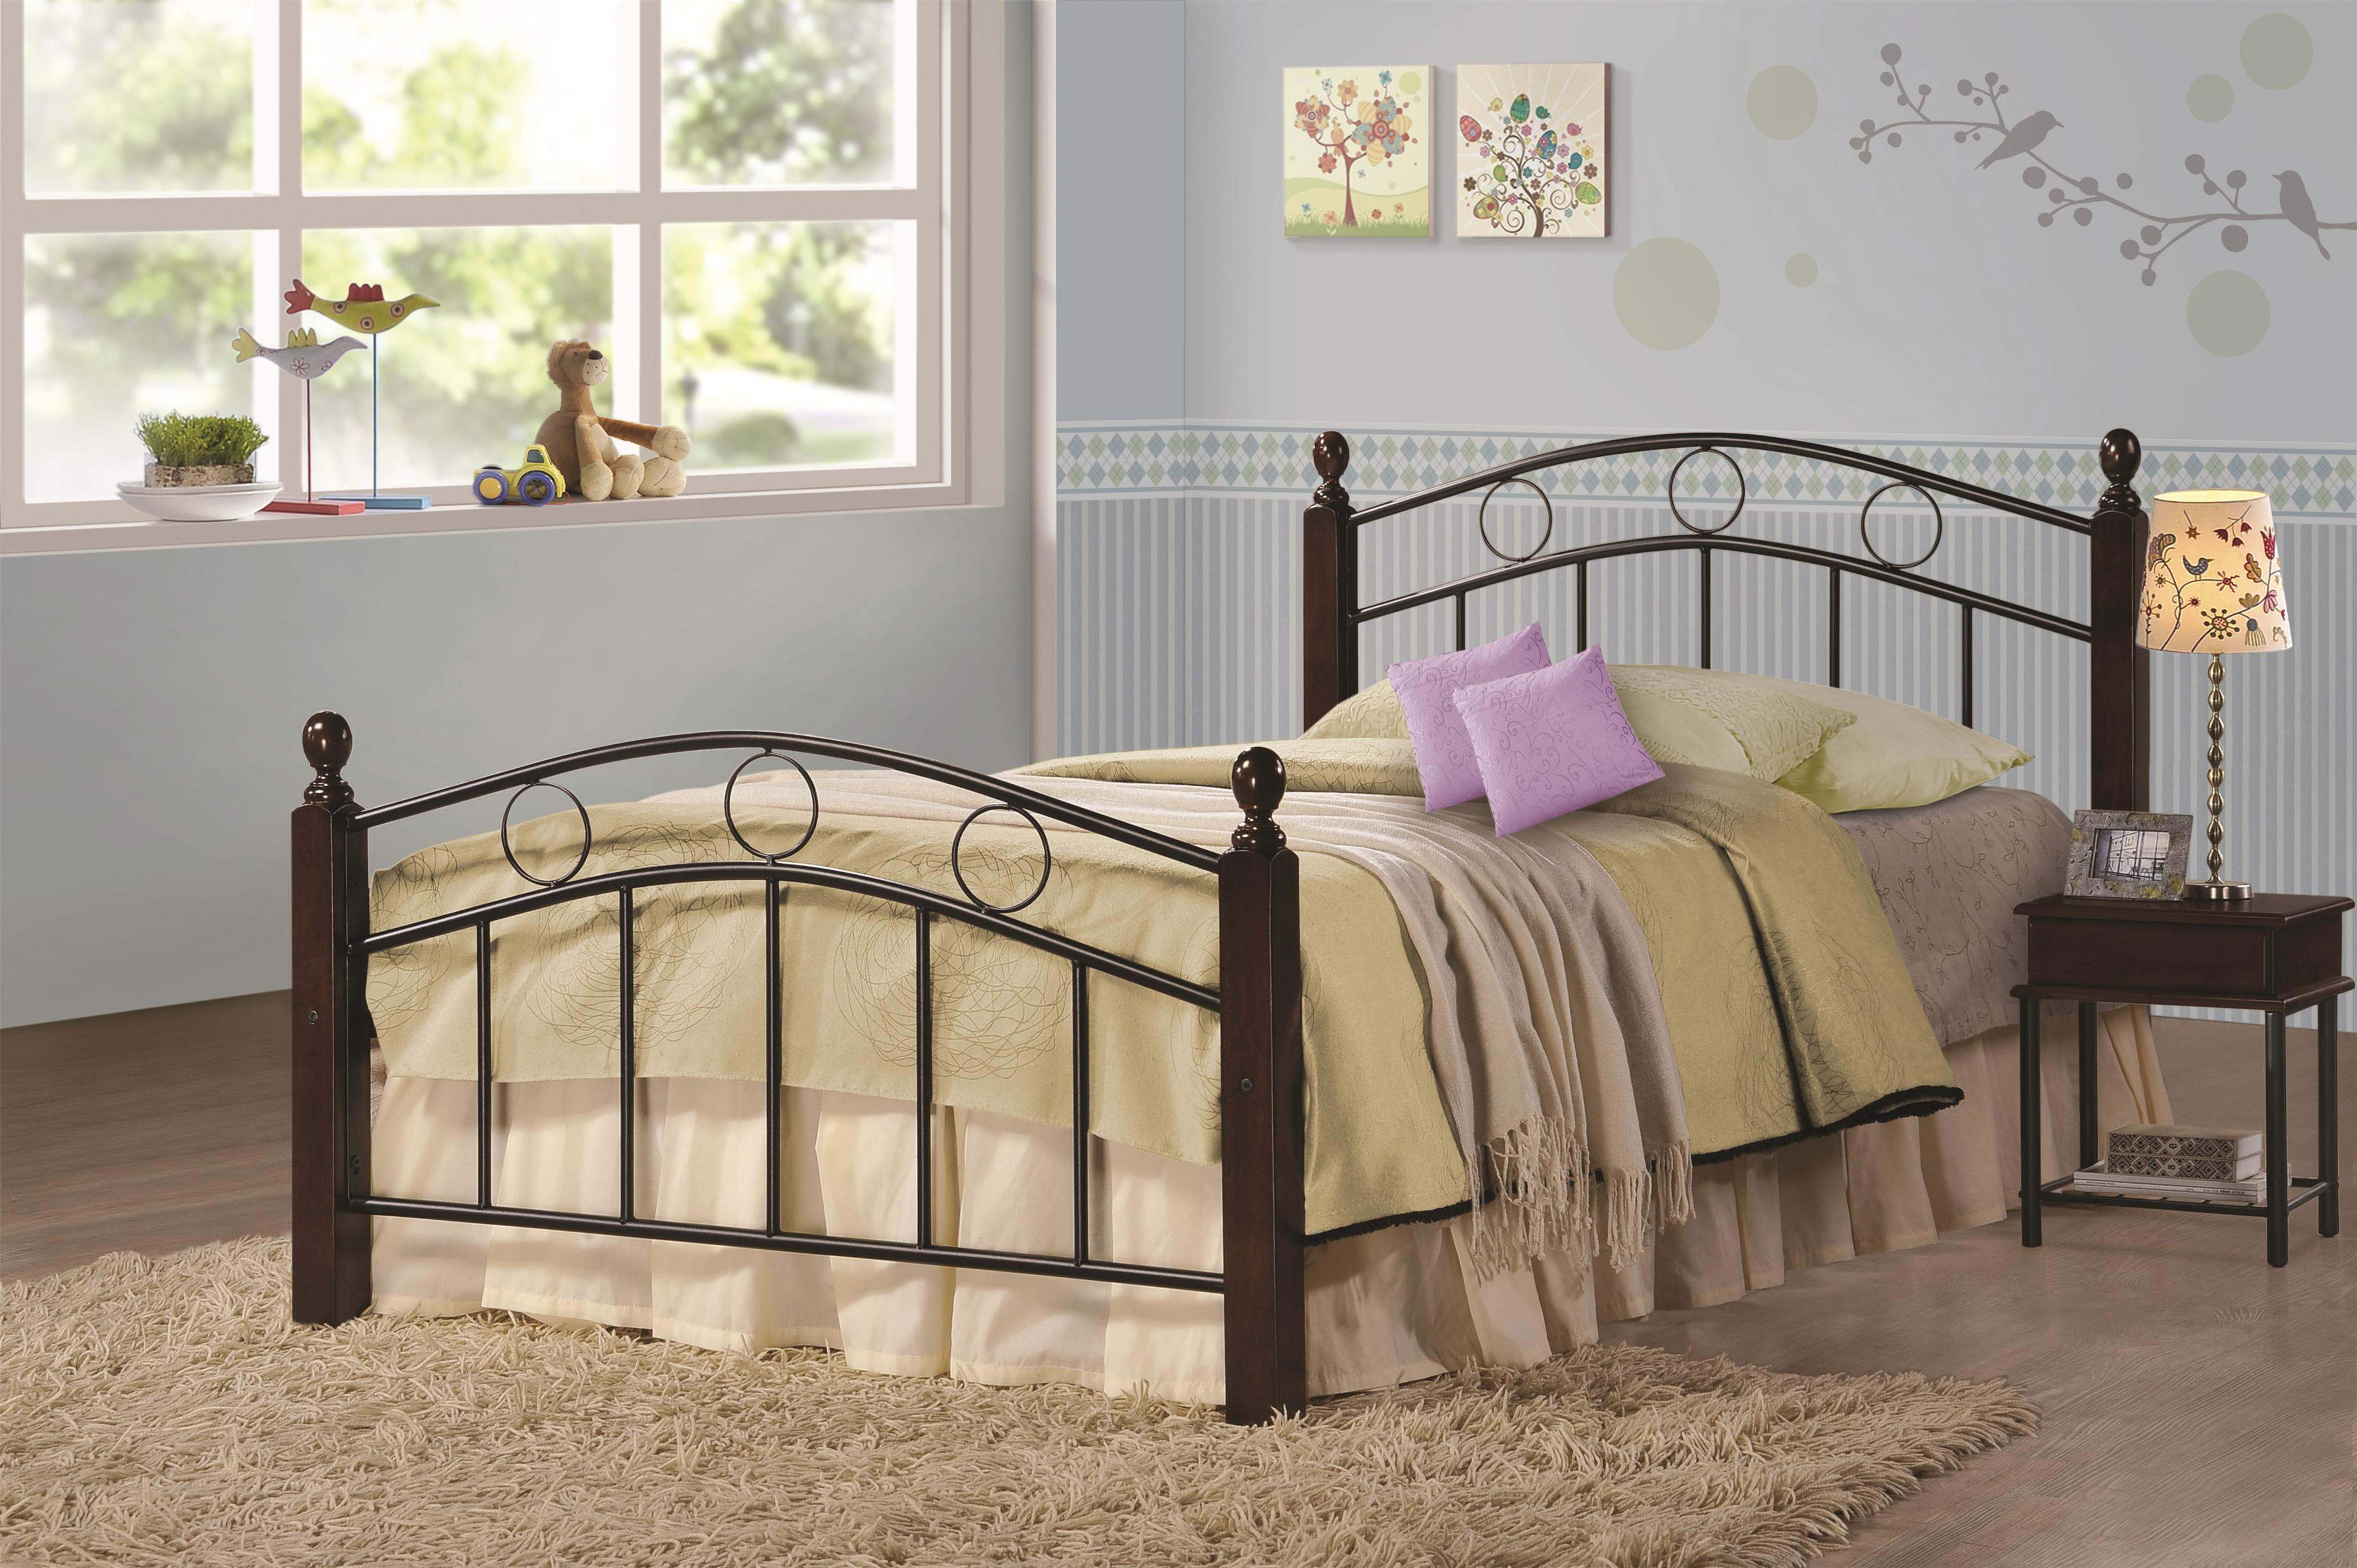 Metal Bed Headboards Iron Beds And Headboards Twin Kyan Metal Bed By Coaster At Value City Furniture